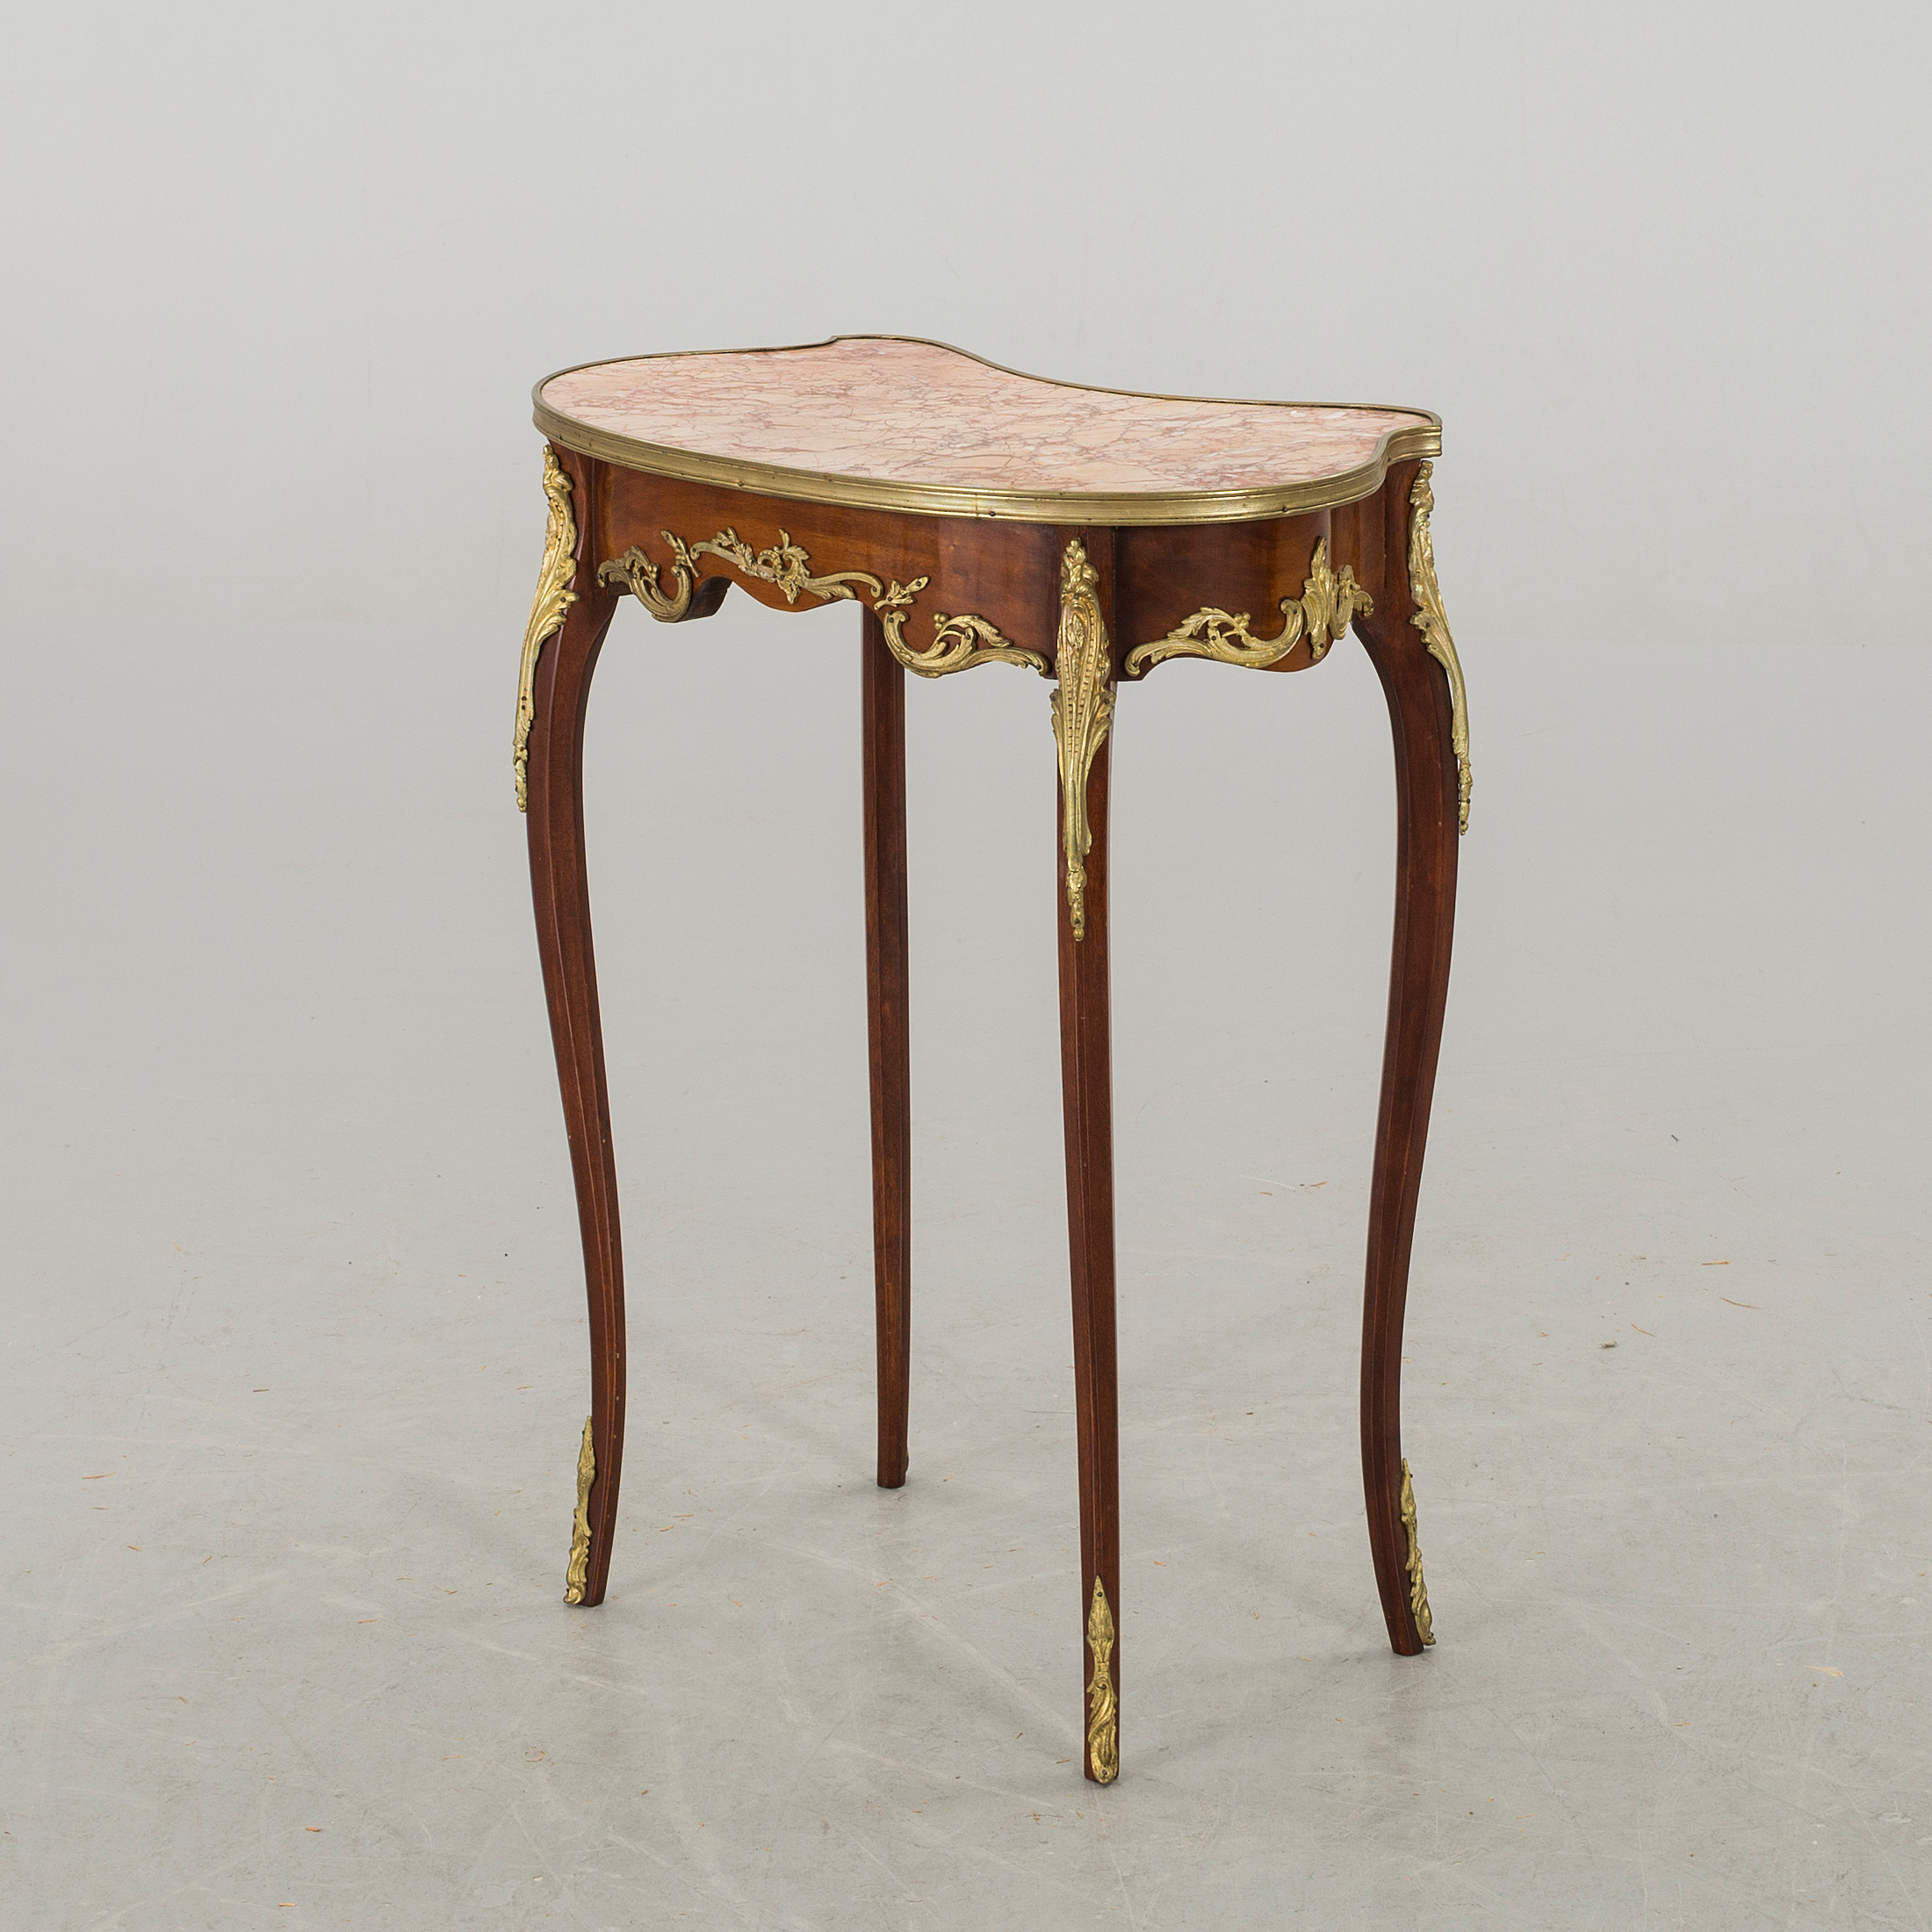 A NEO ROCOCO SIDE TABLE Bukowskis - Rococo side table